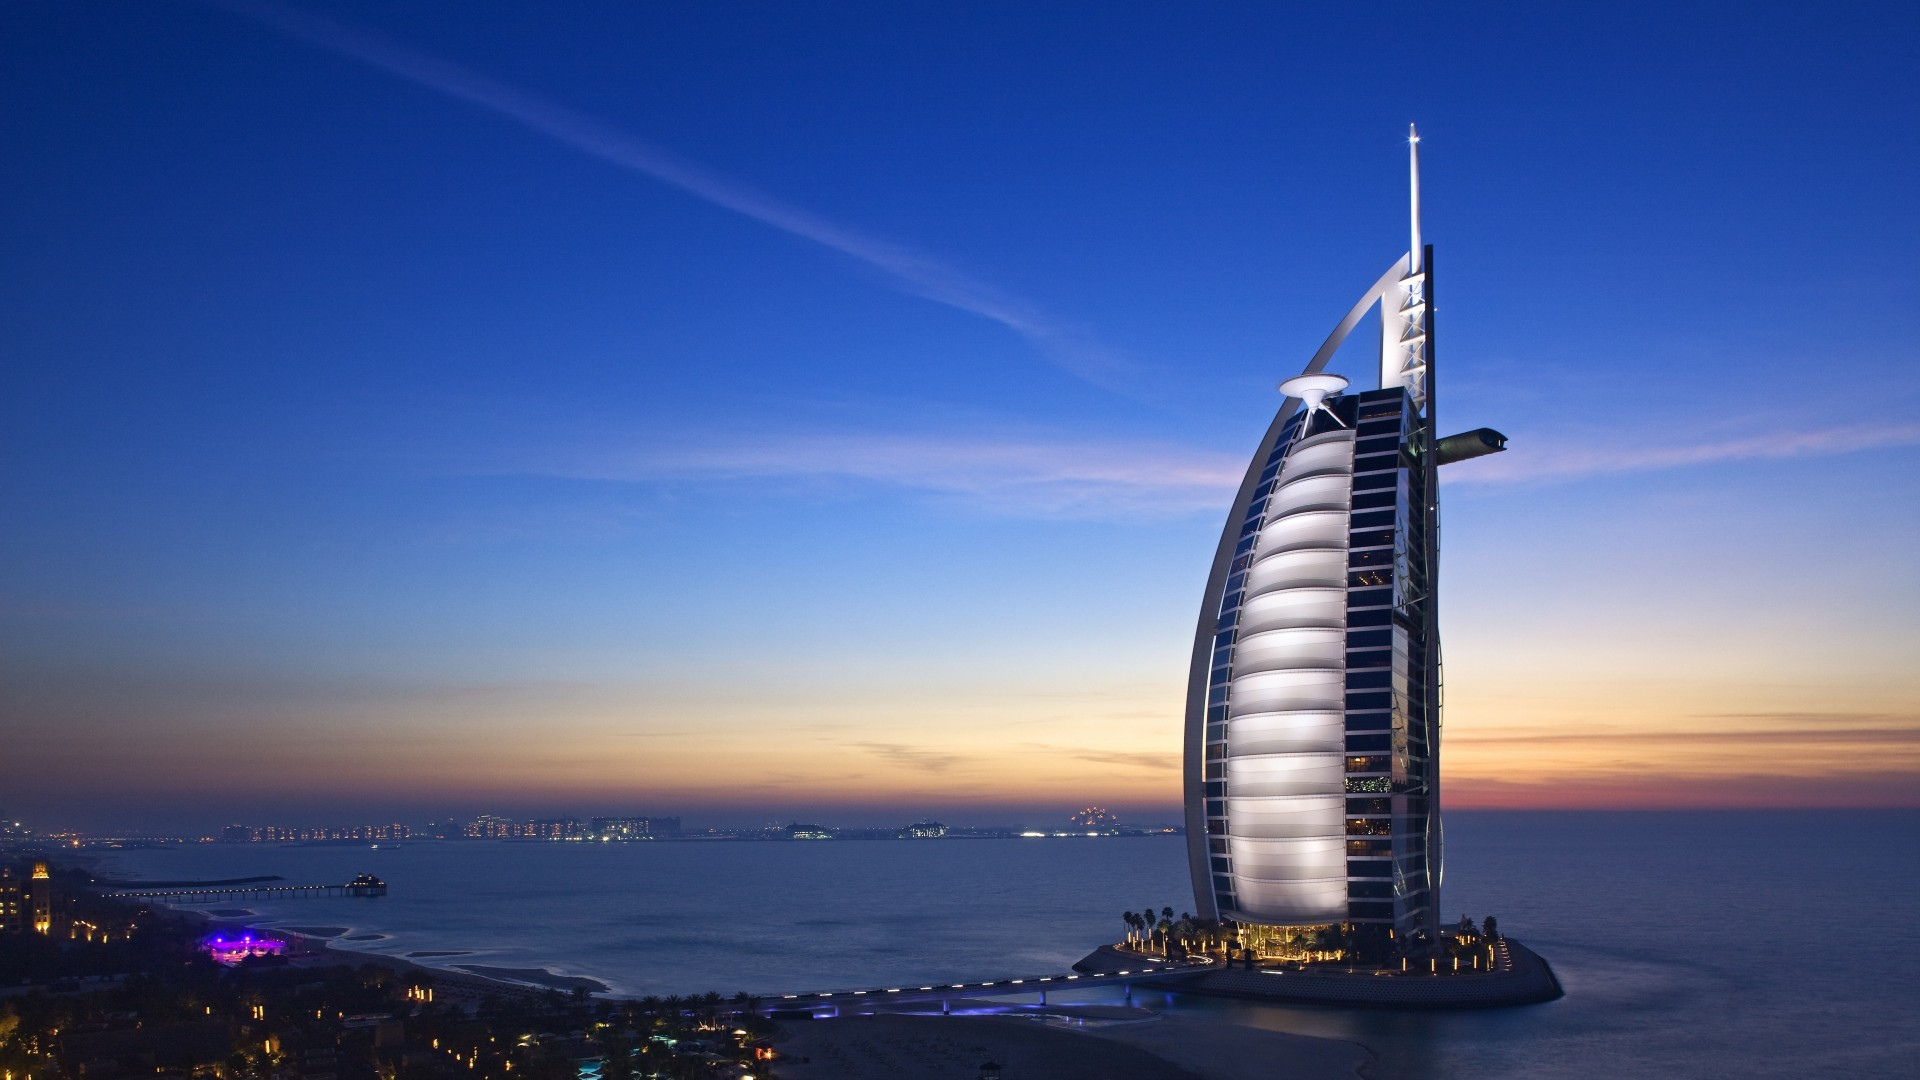 burj-al-arab-hotel-1920x1080-dubai-uae-travel-booking-pool-378.jpg